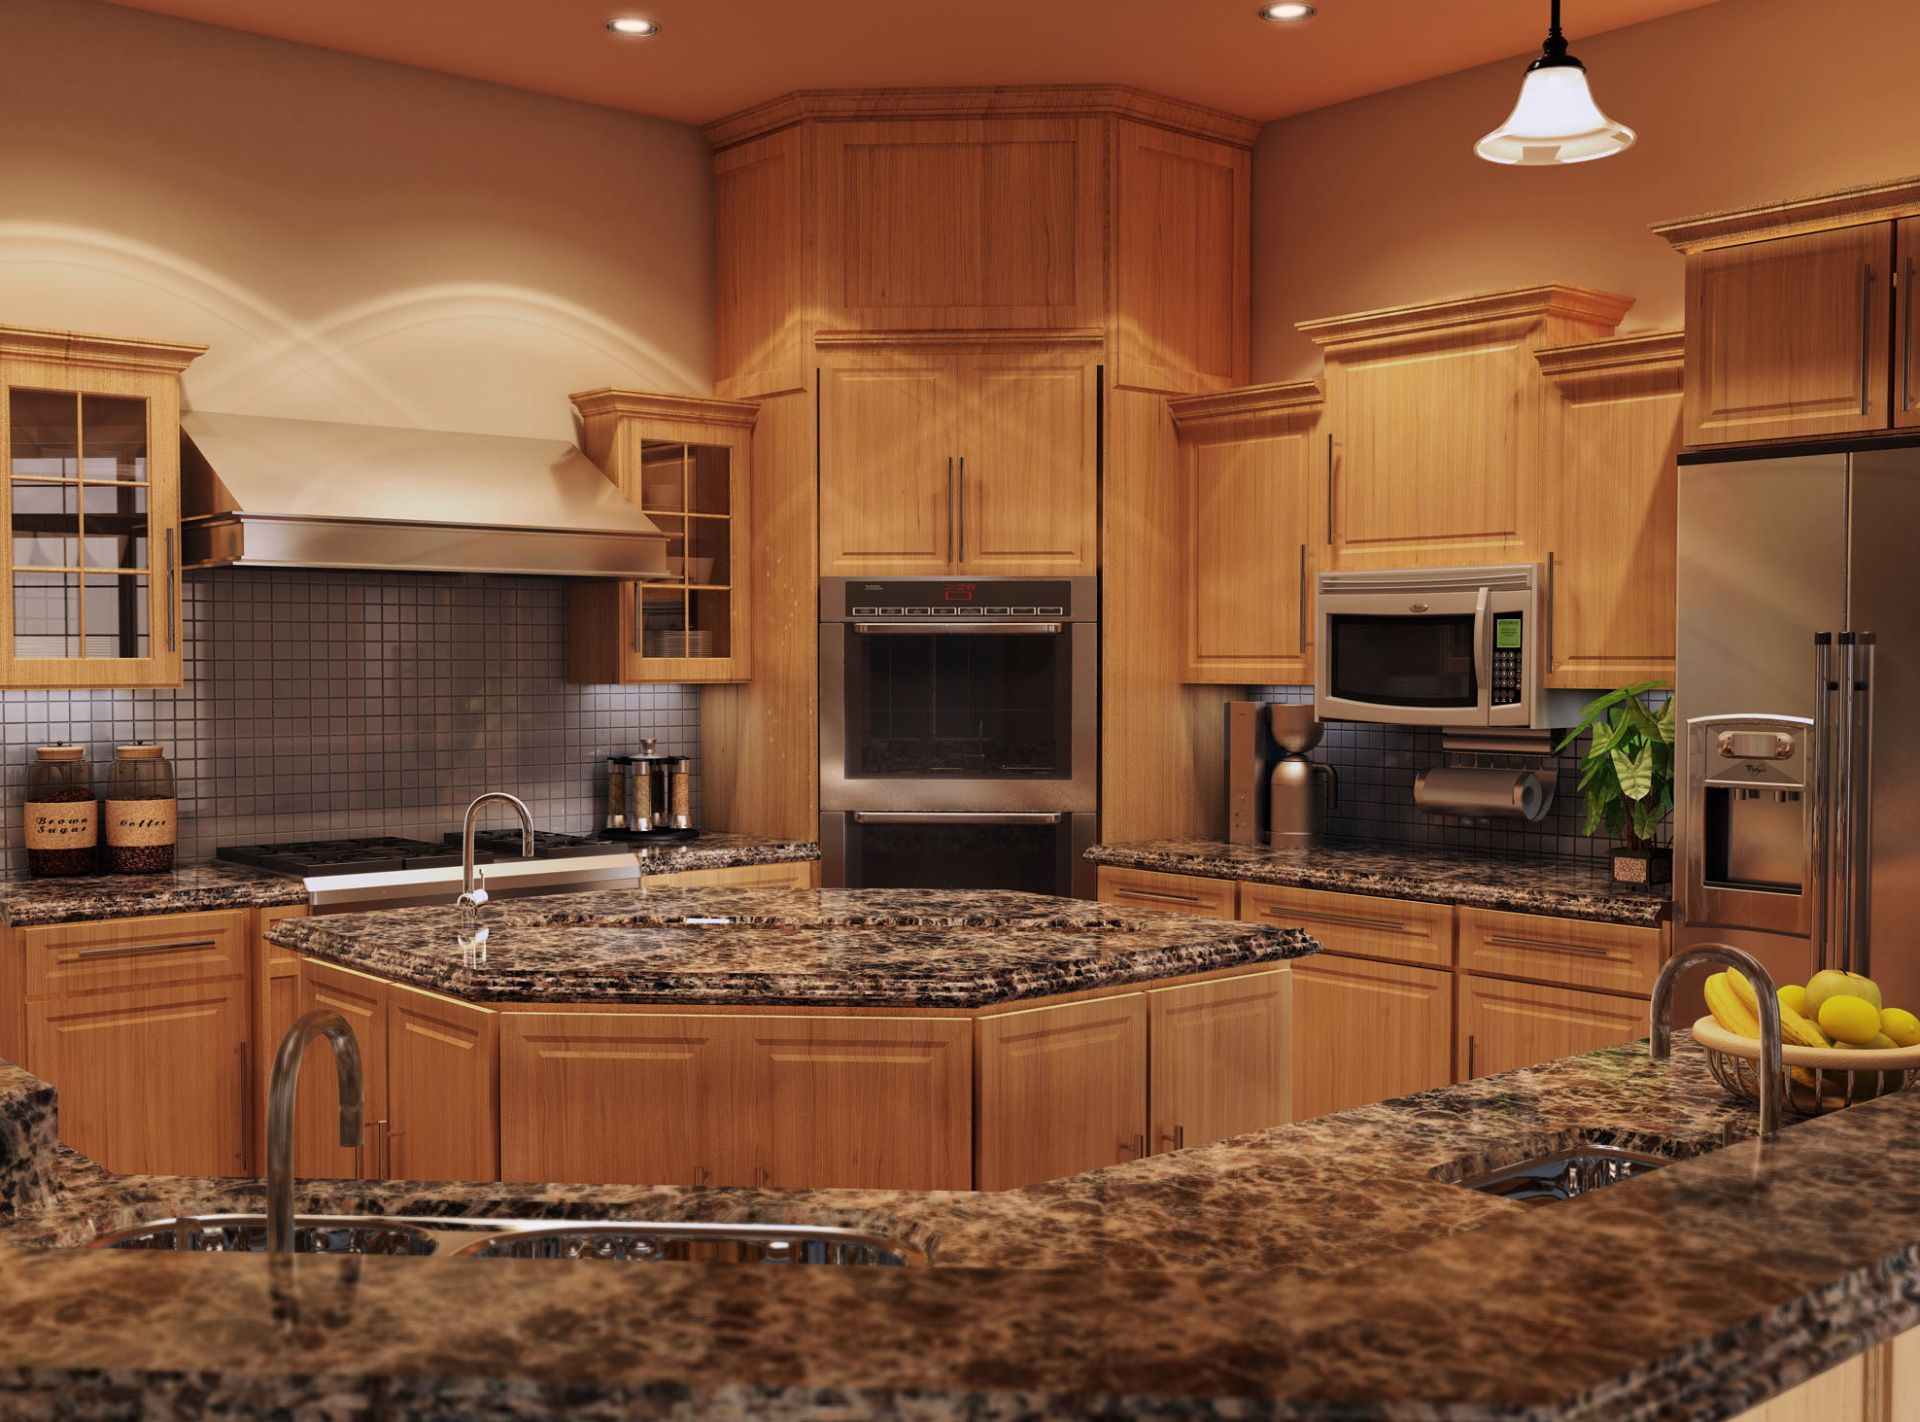 granite countertops south shore ma kitchen granite countertops Granite Countertops South S Ma Bestcountertops